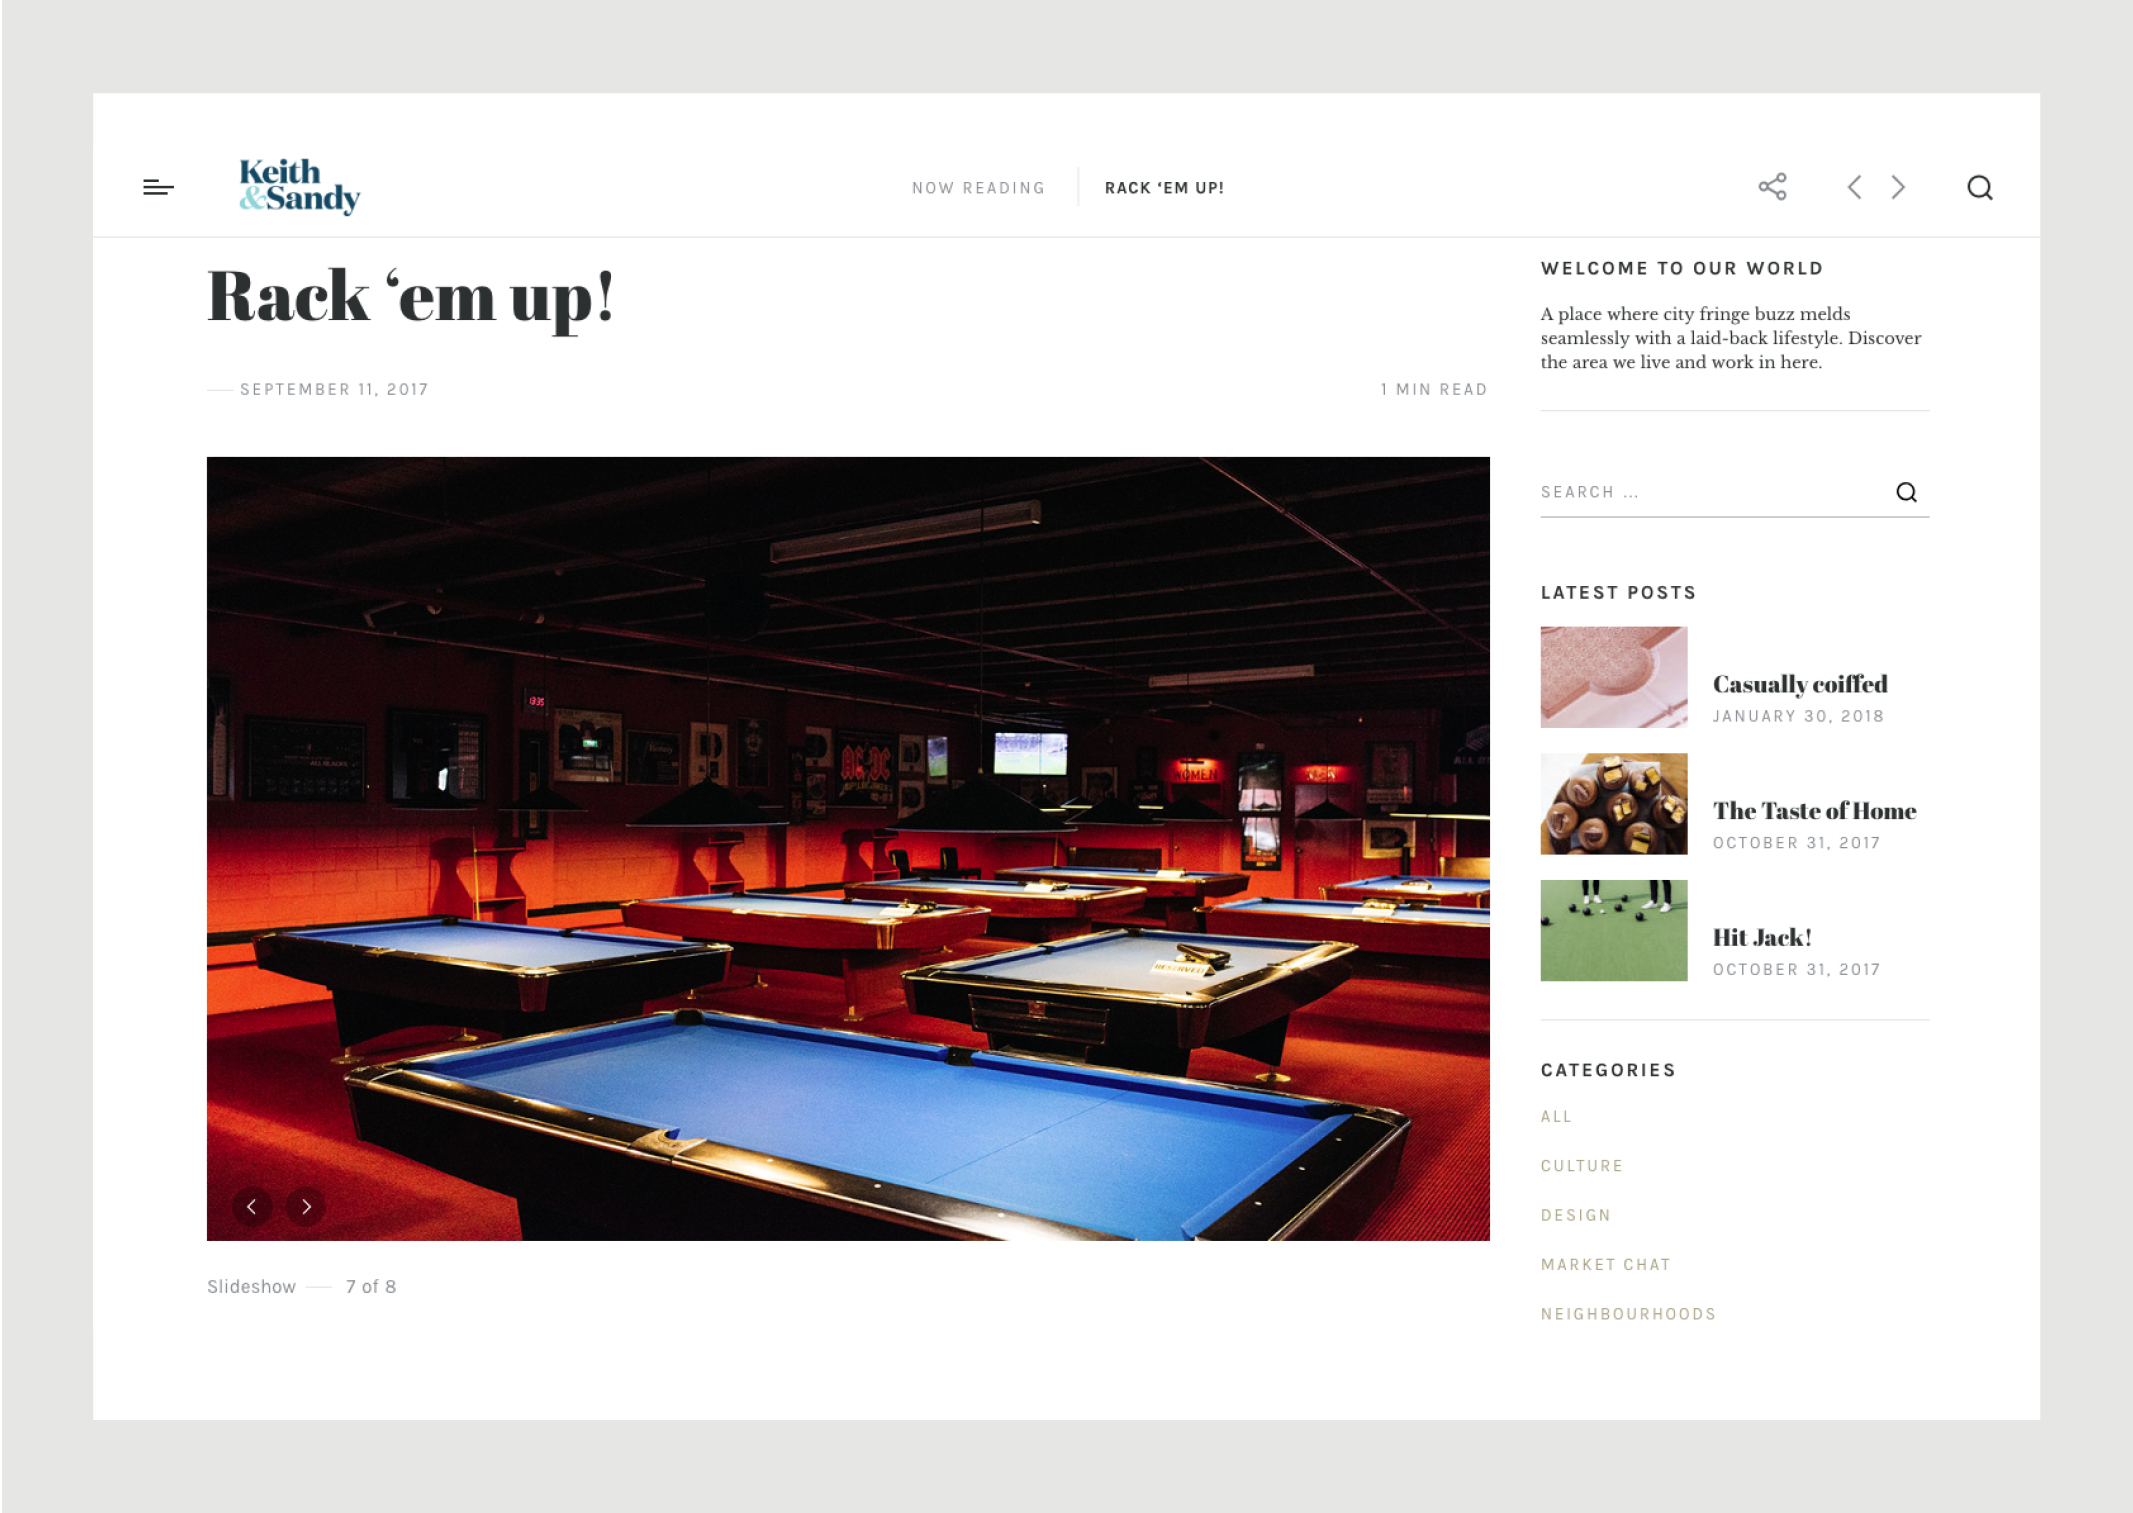 Website blog featuring dramatically lit pool tables